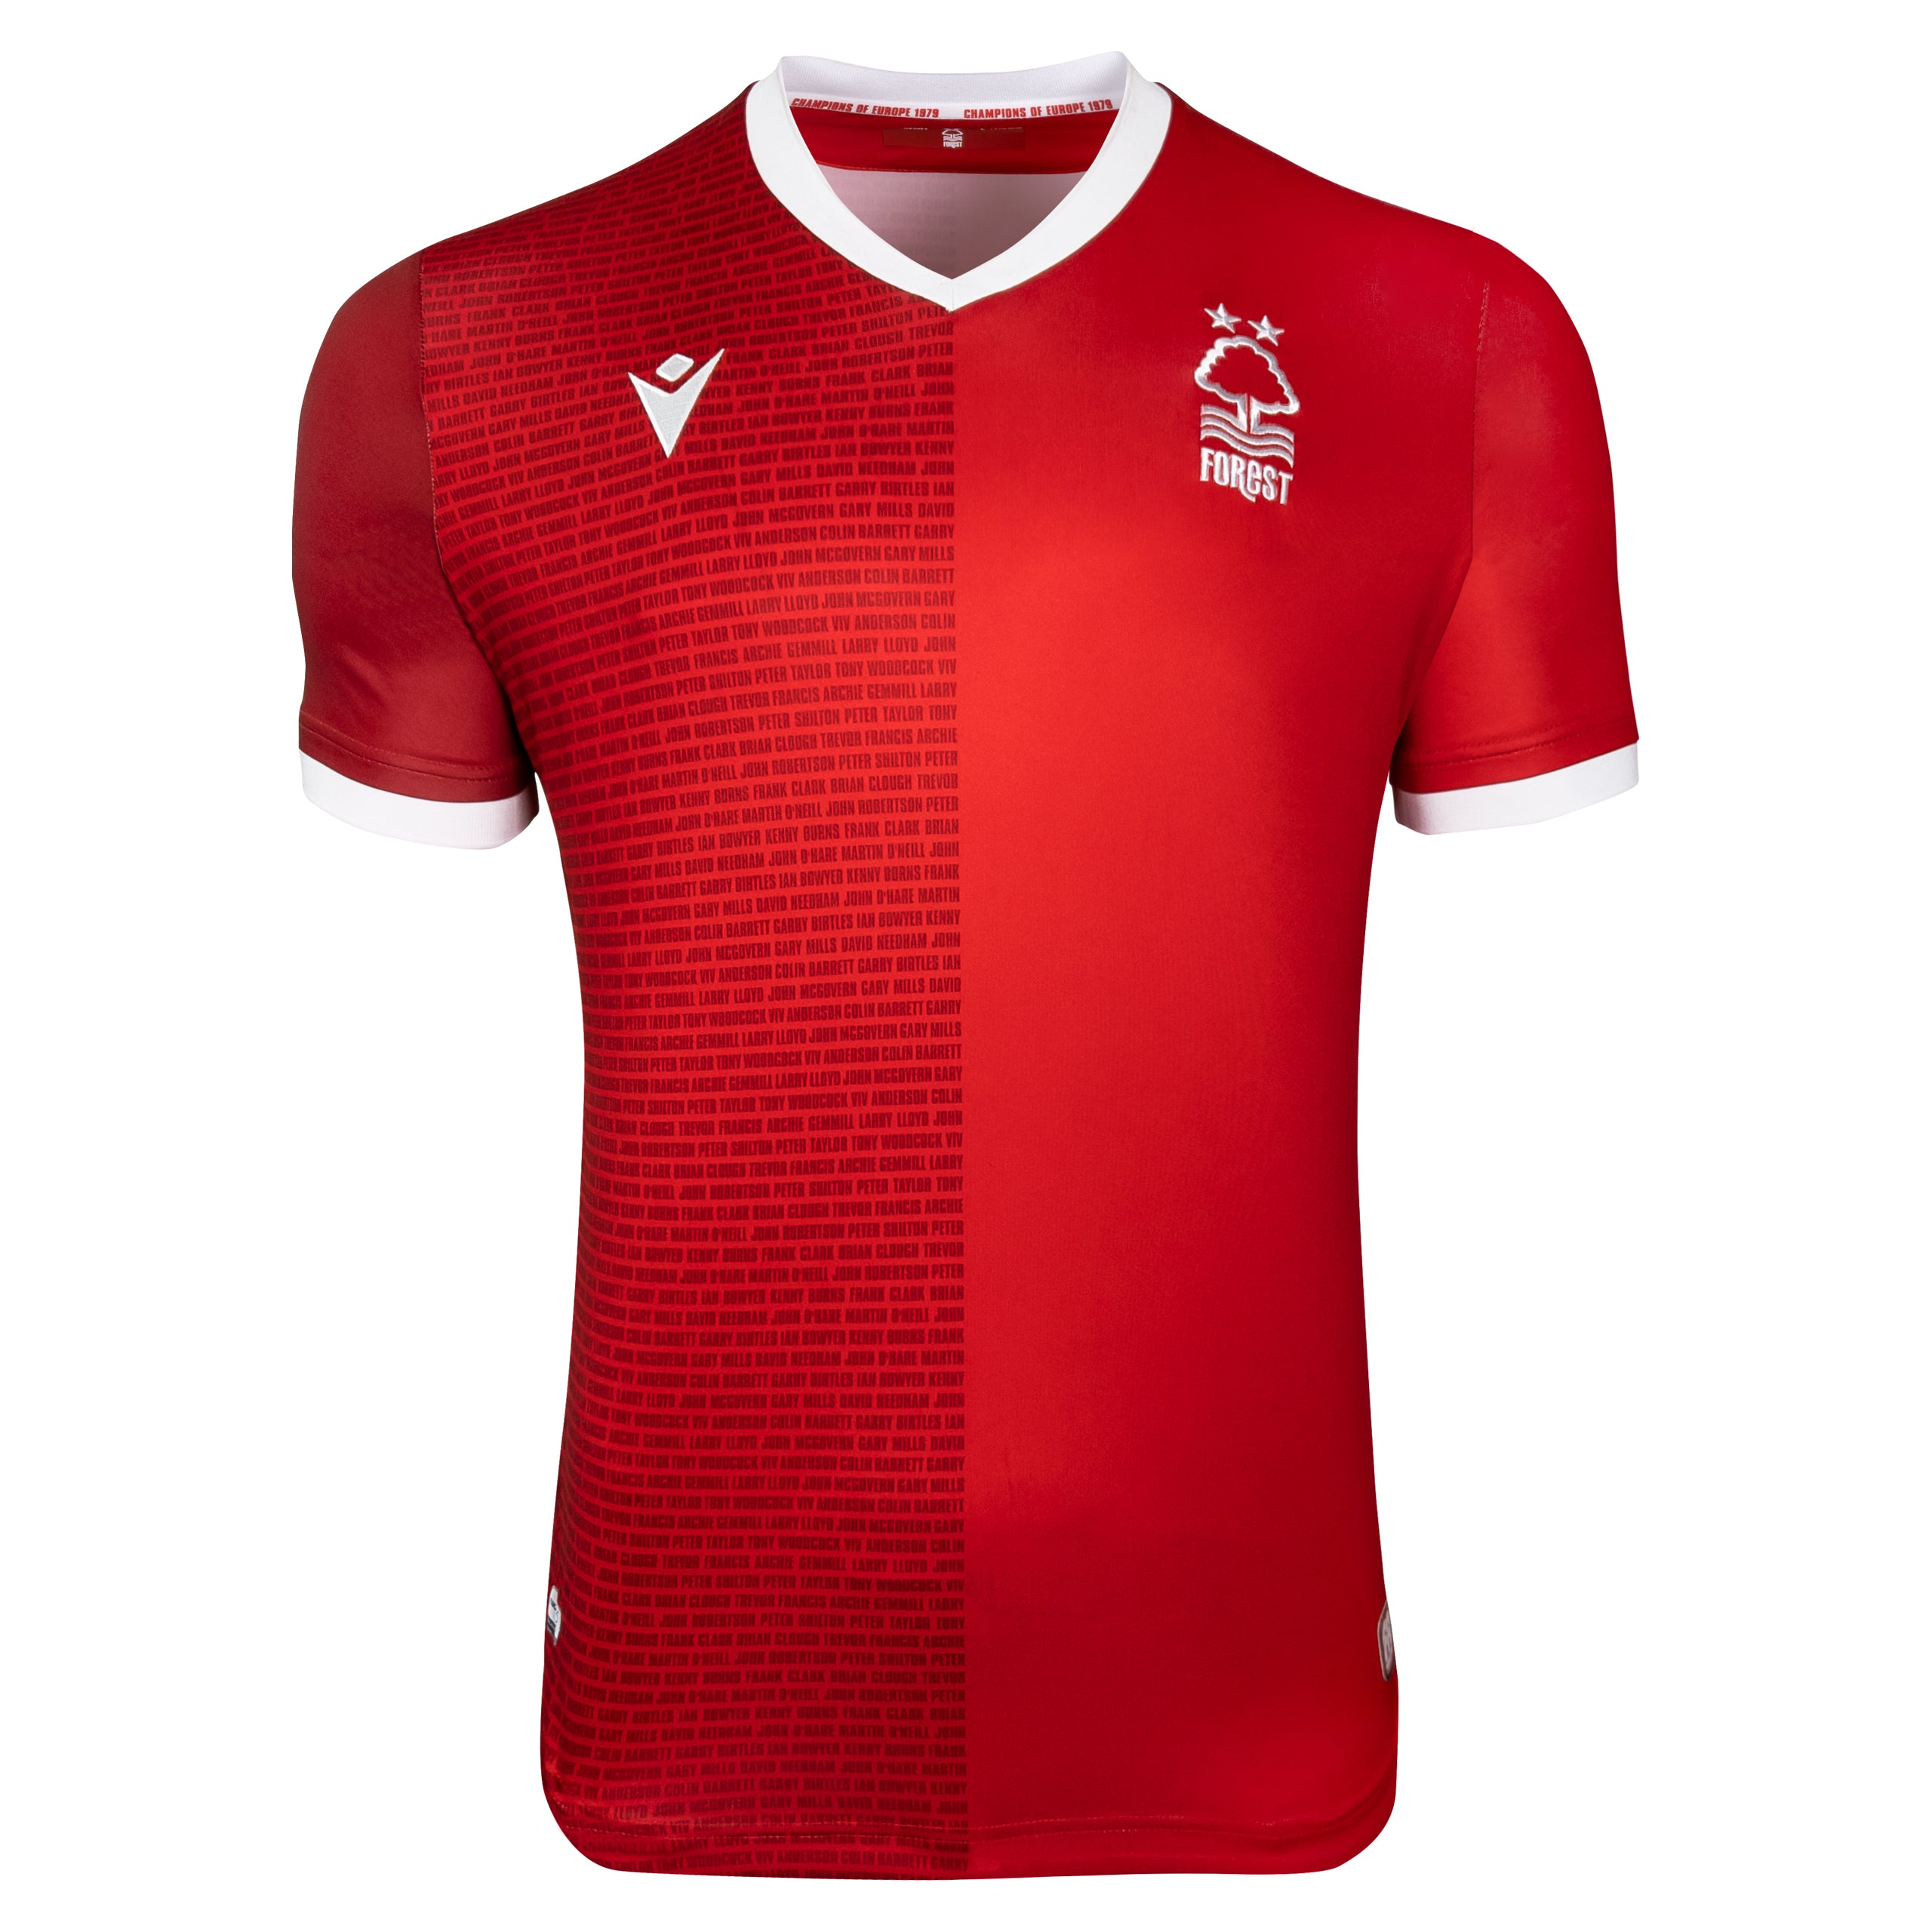 NFFC 1979 European Cup Celebration Shirt